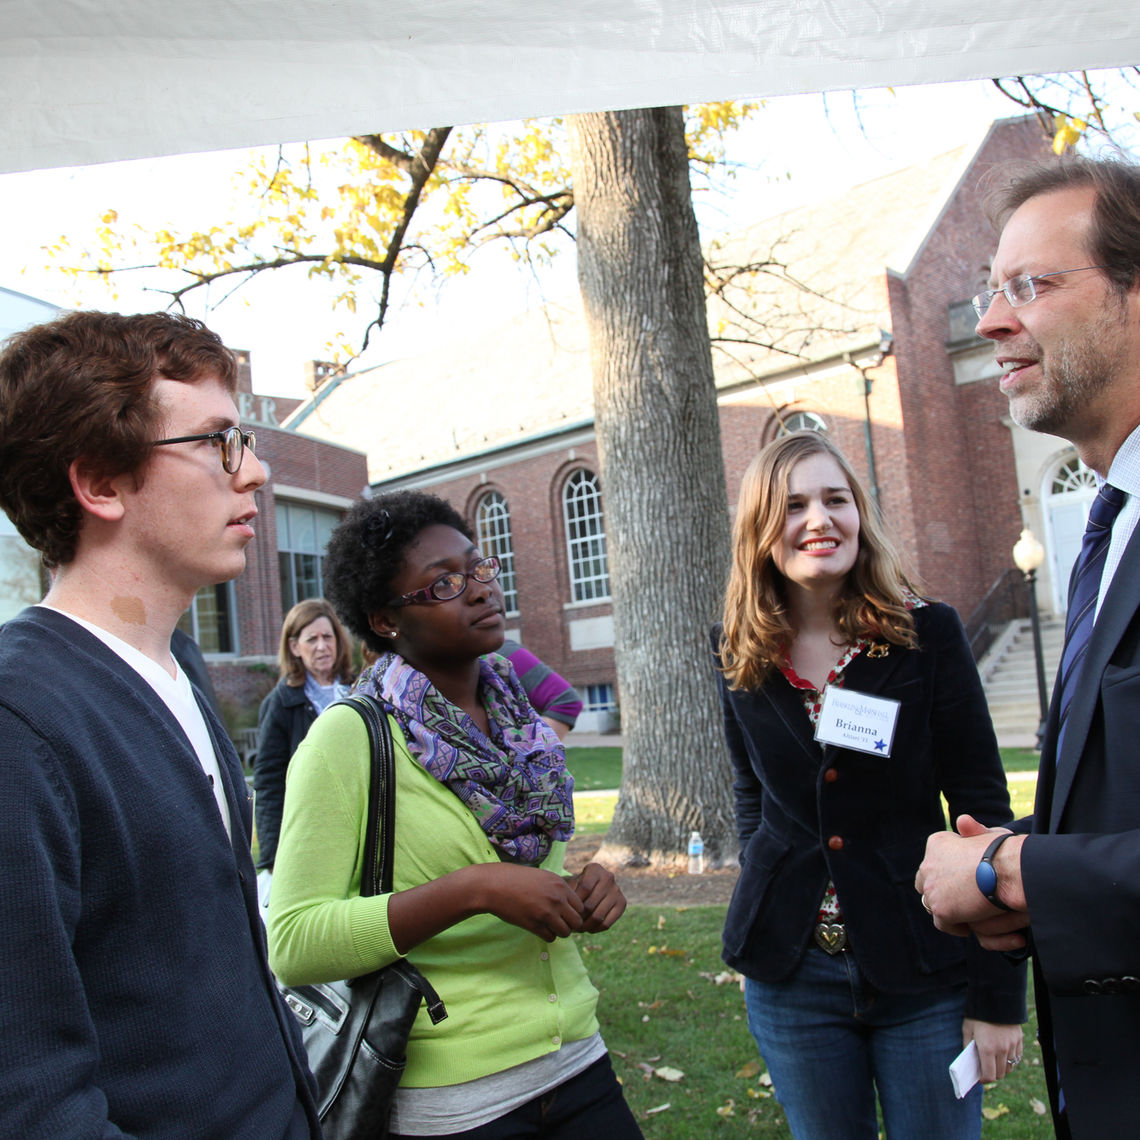 On Saturday afternoon, F&M President Daniel R. Porterfield spends some time meeting with students, parents and alumni.